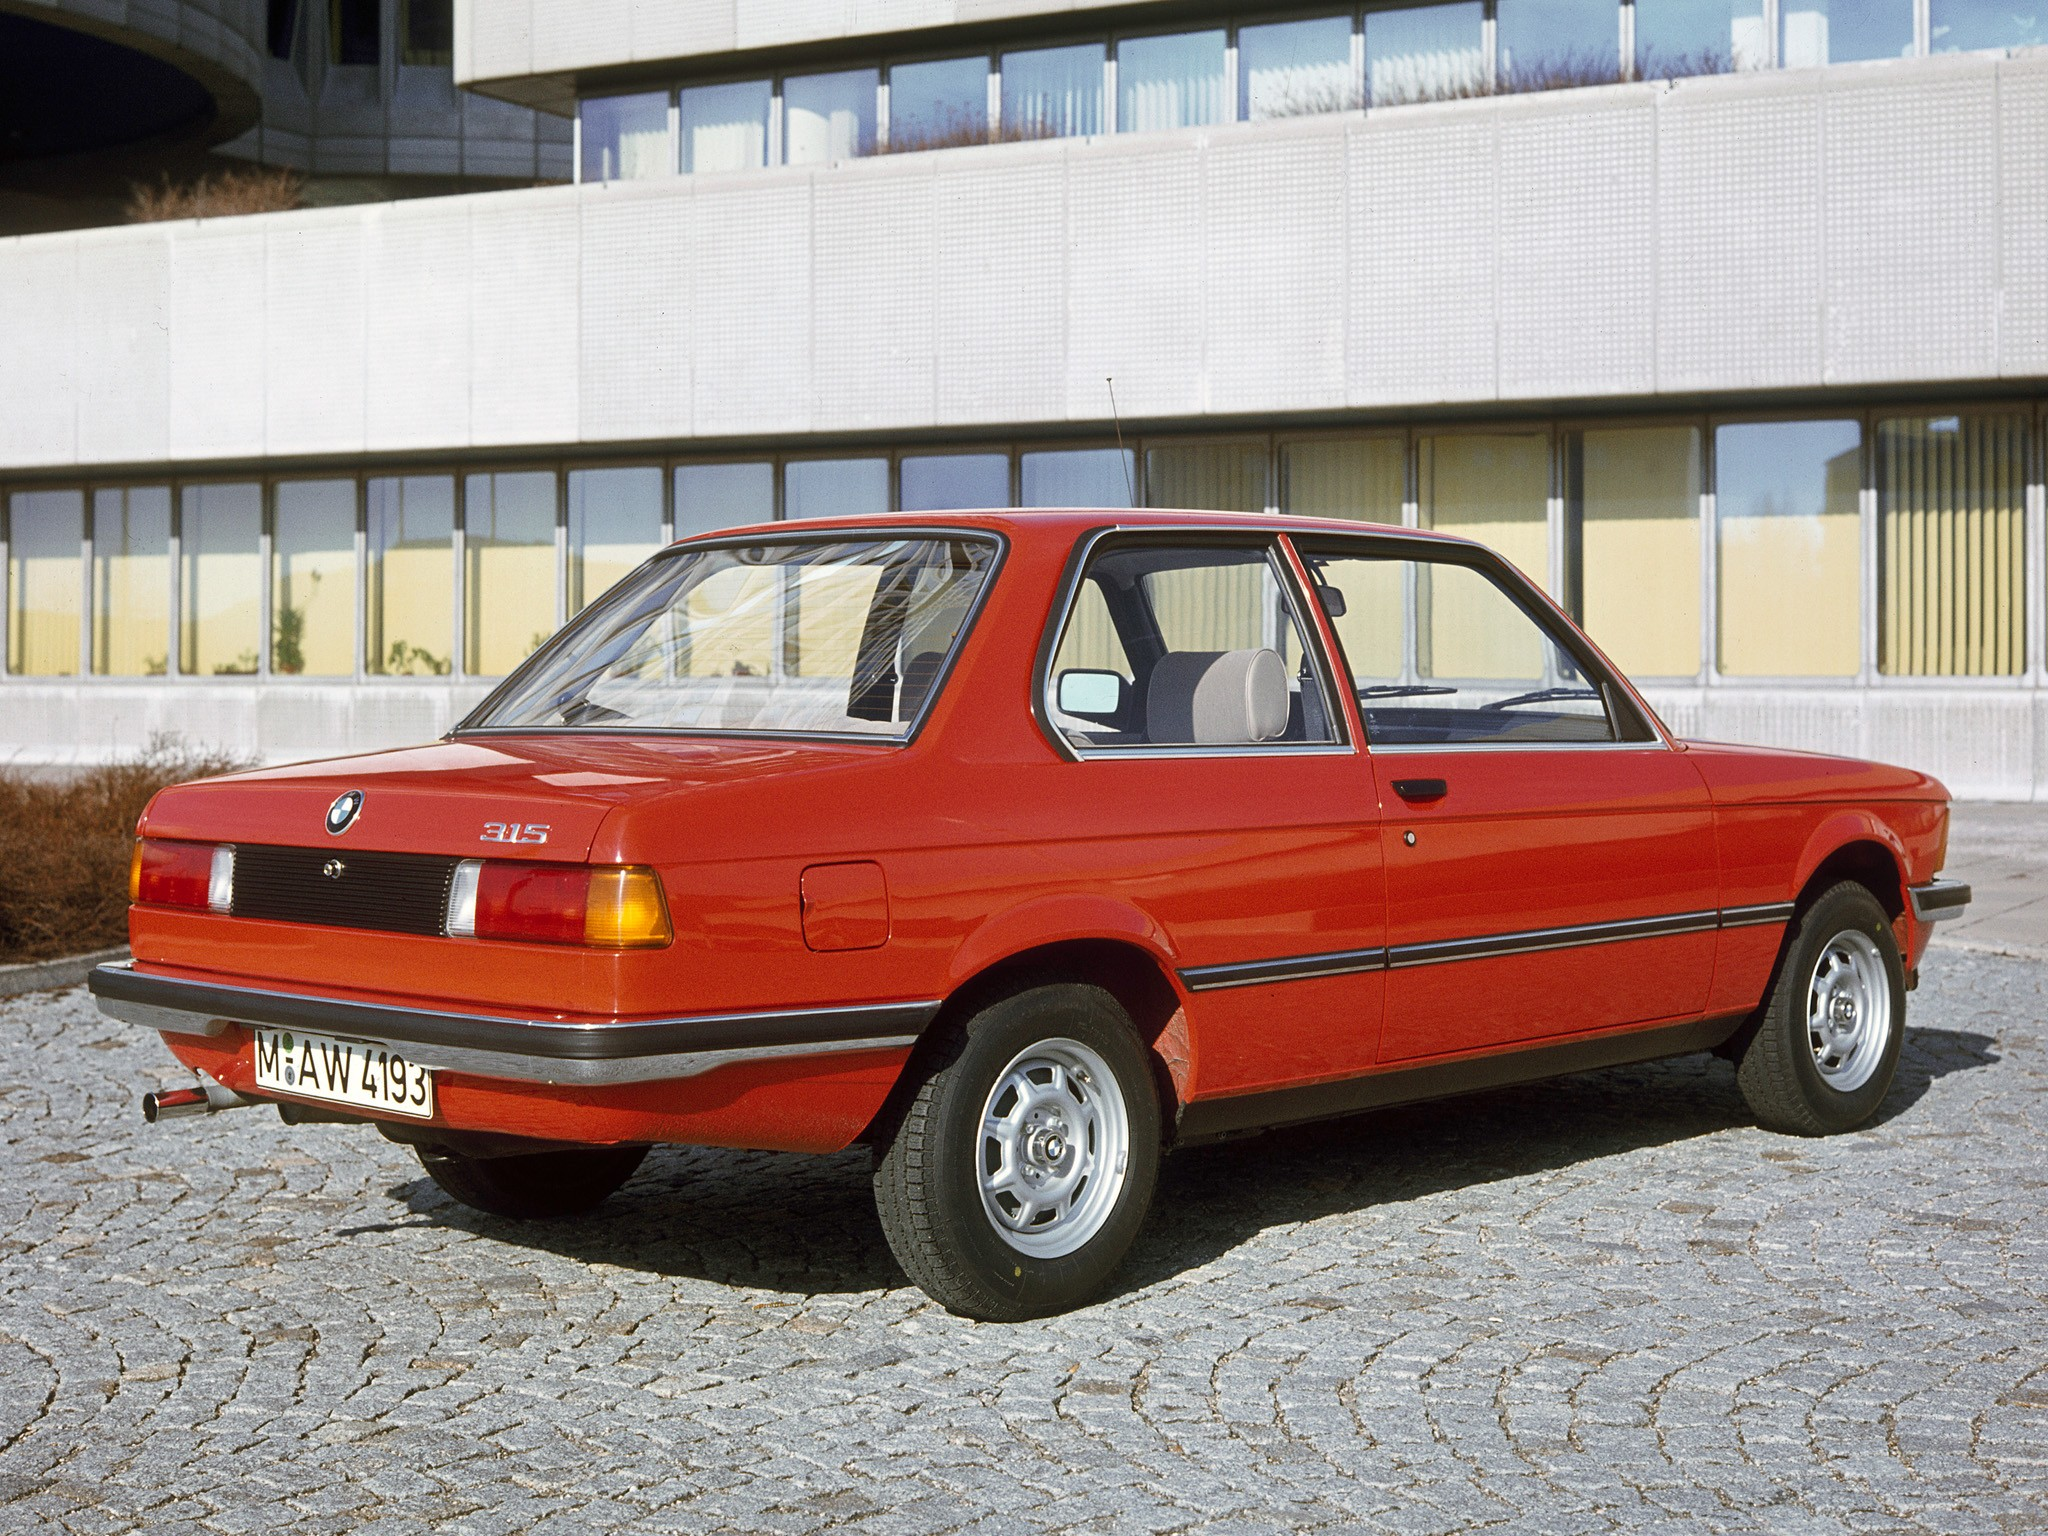 BMW 3 series 316 1979 photo - 11